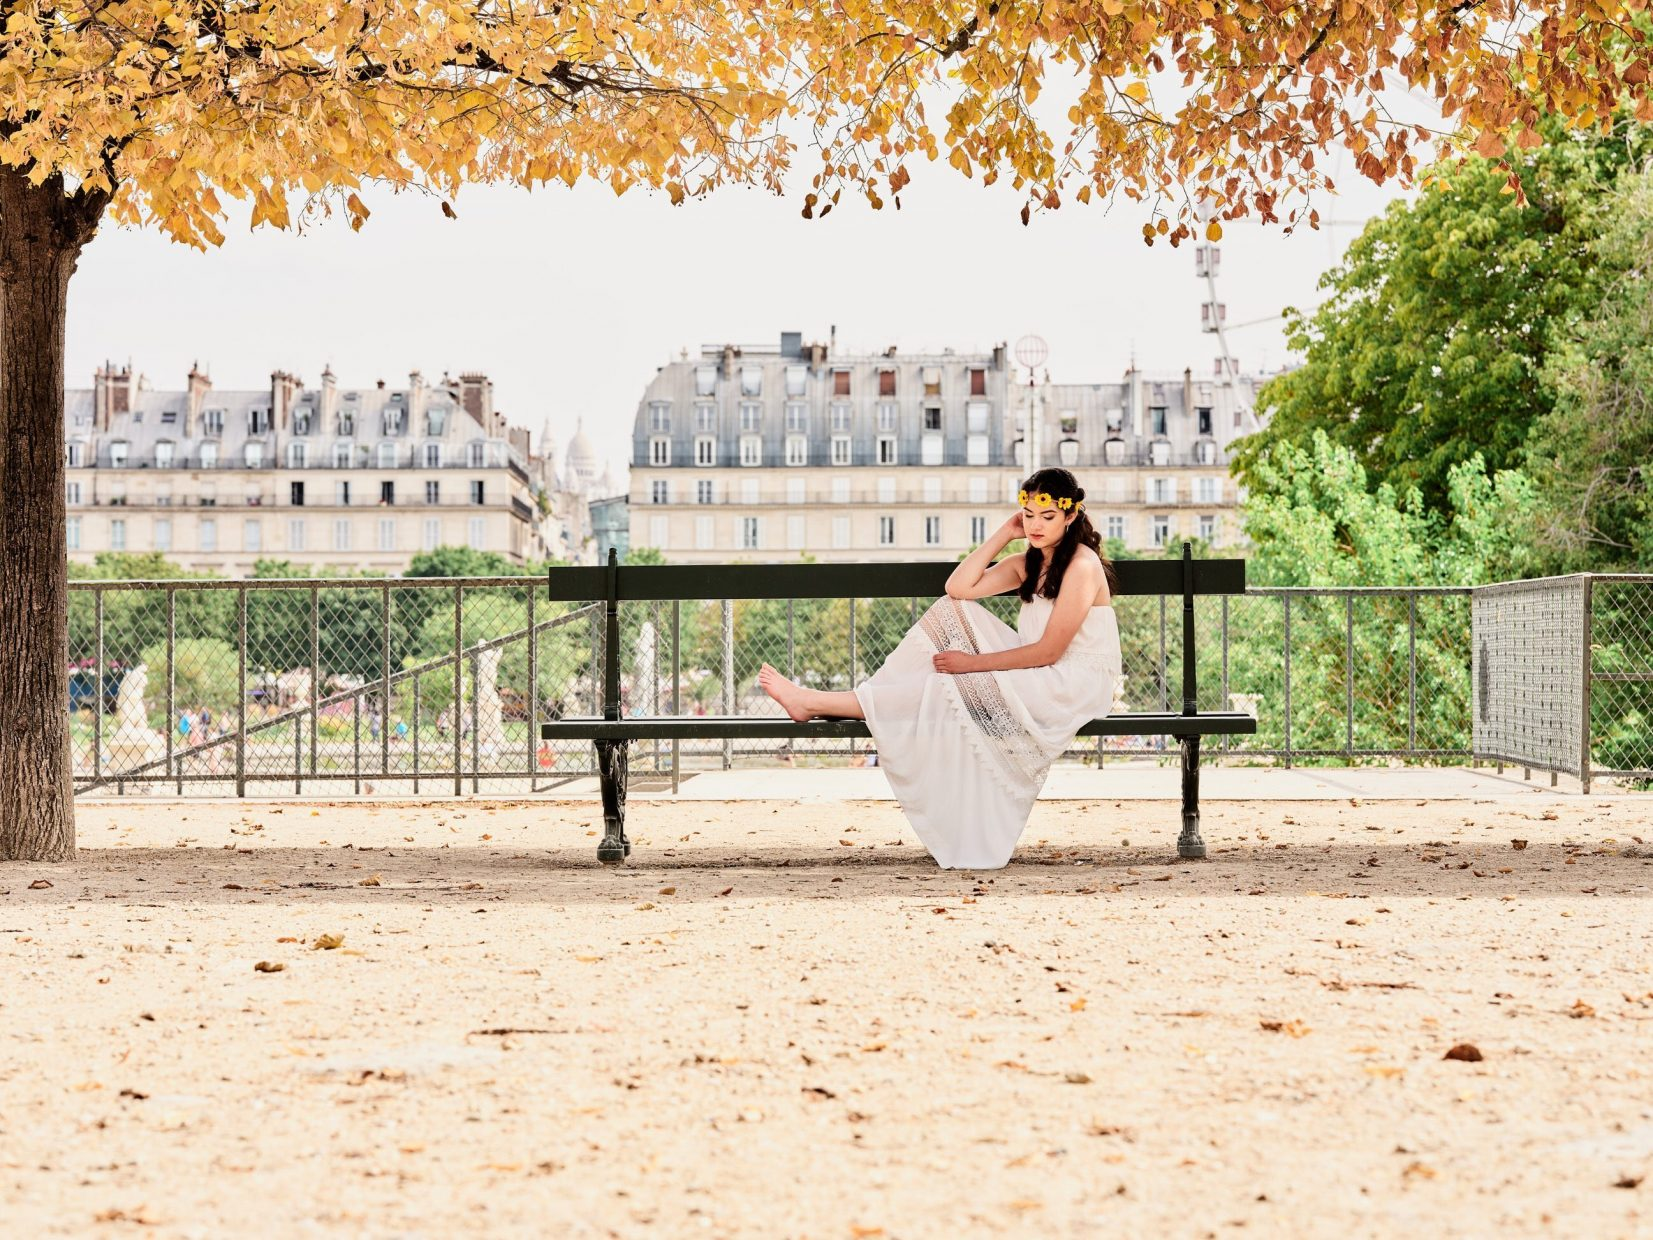 outdoor model photography in france